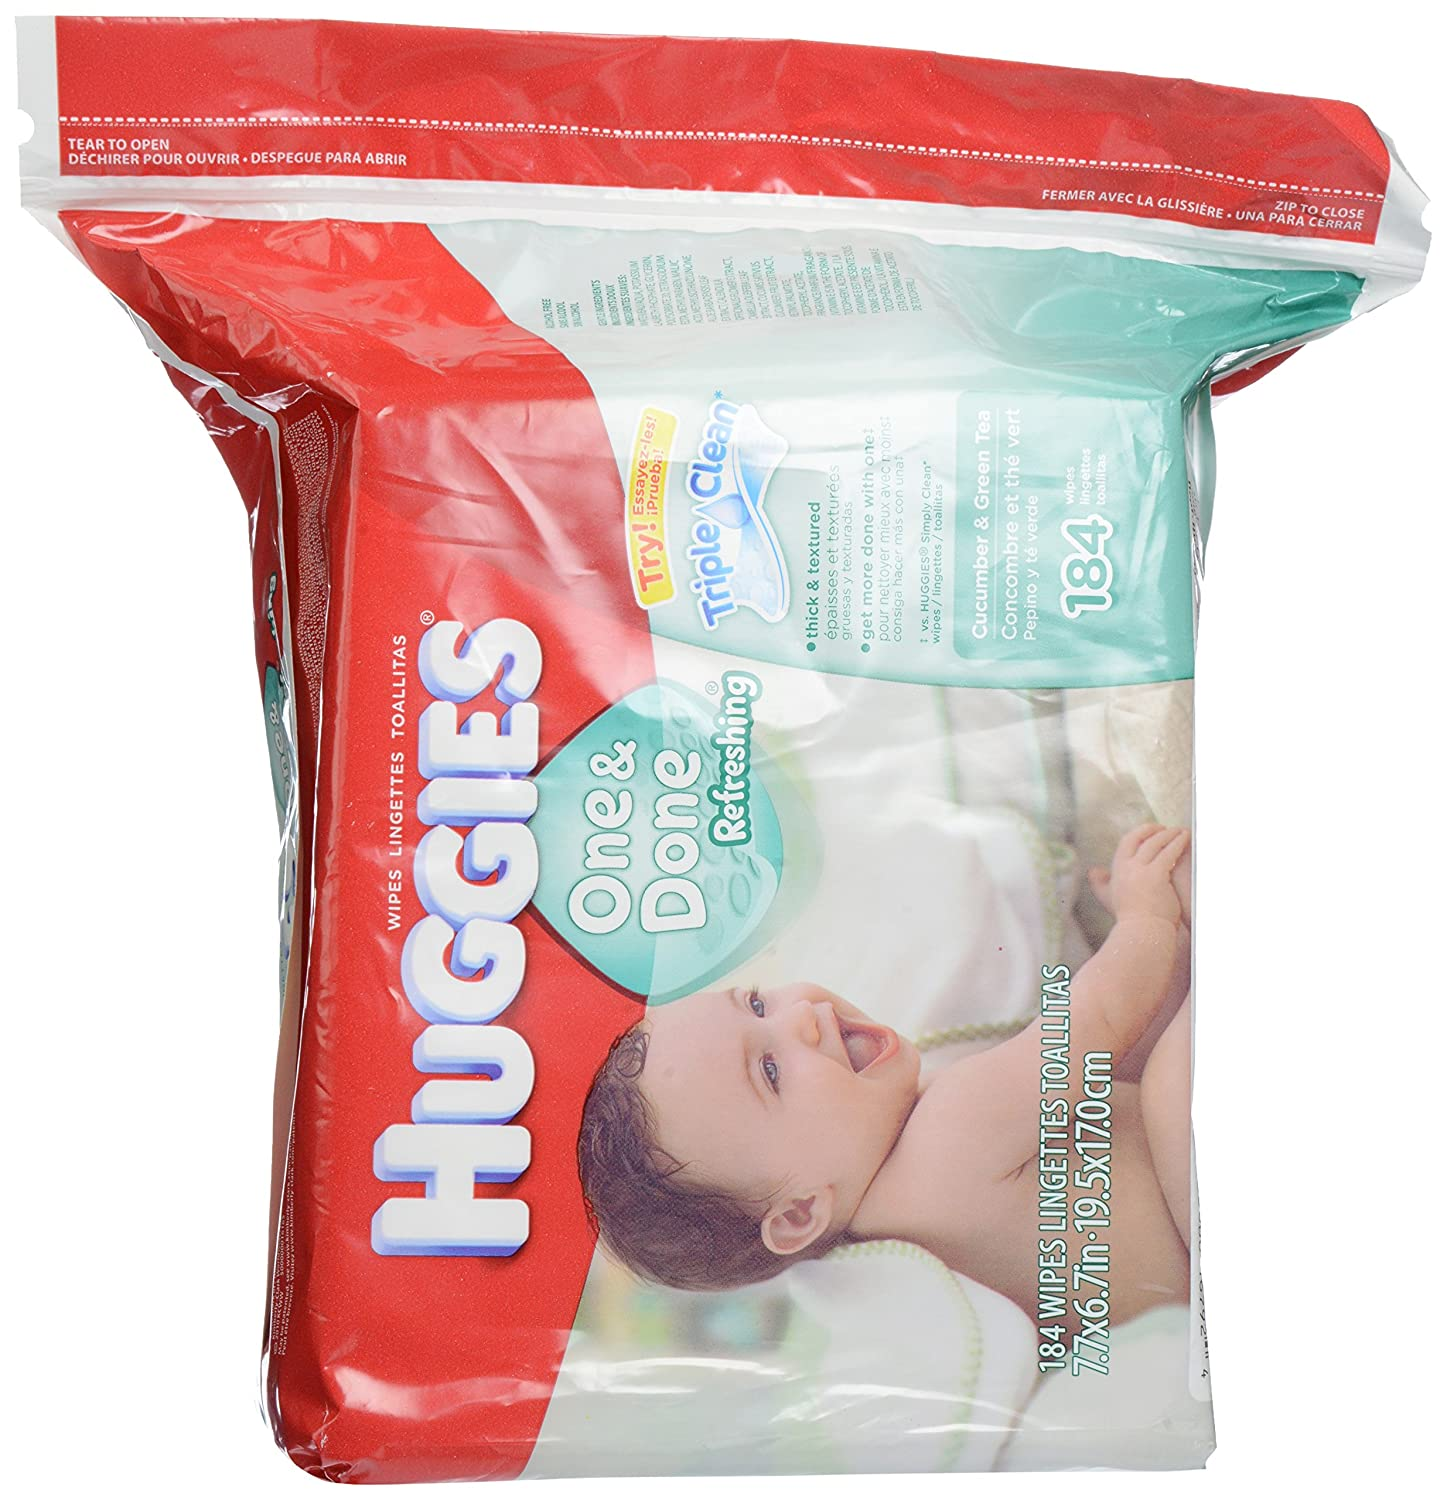 Huggies One & Done Refreshing Baby Wipes Refill, 184 ct: Amazon.com: Grocery & Gourmet Food